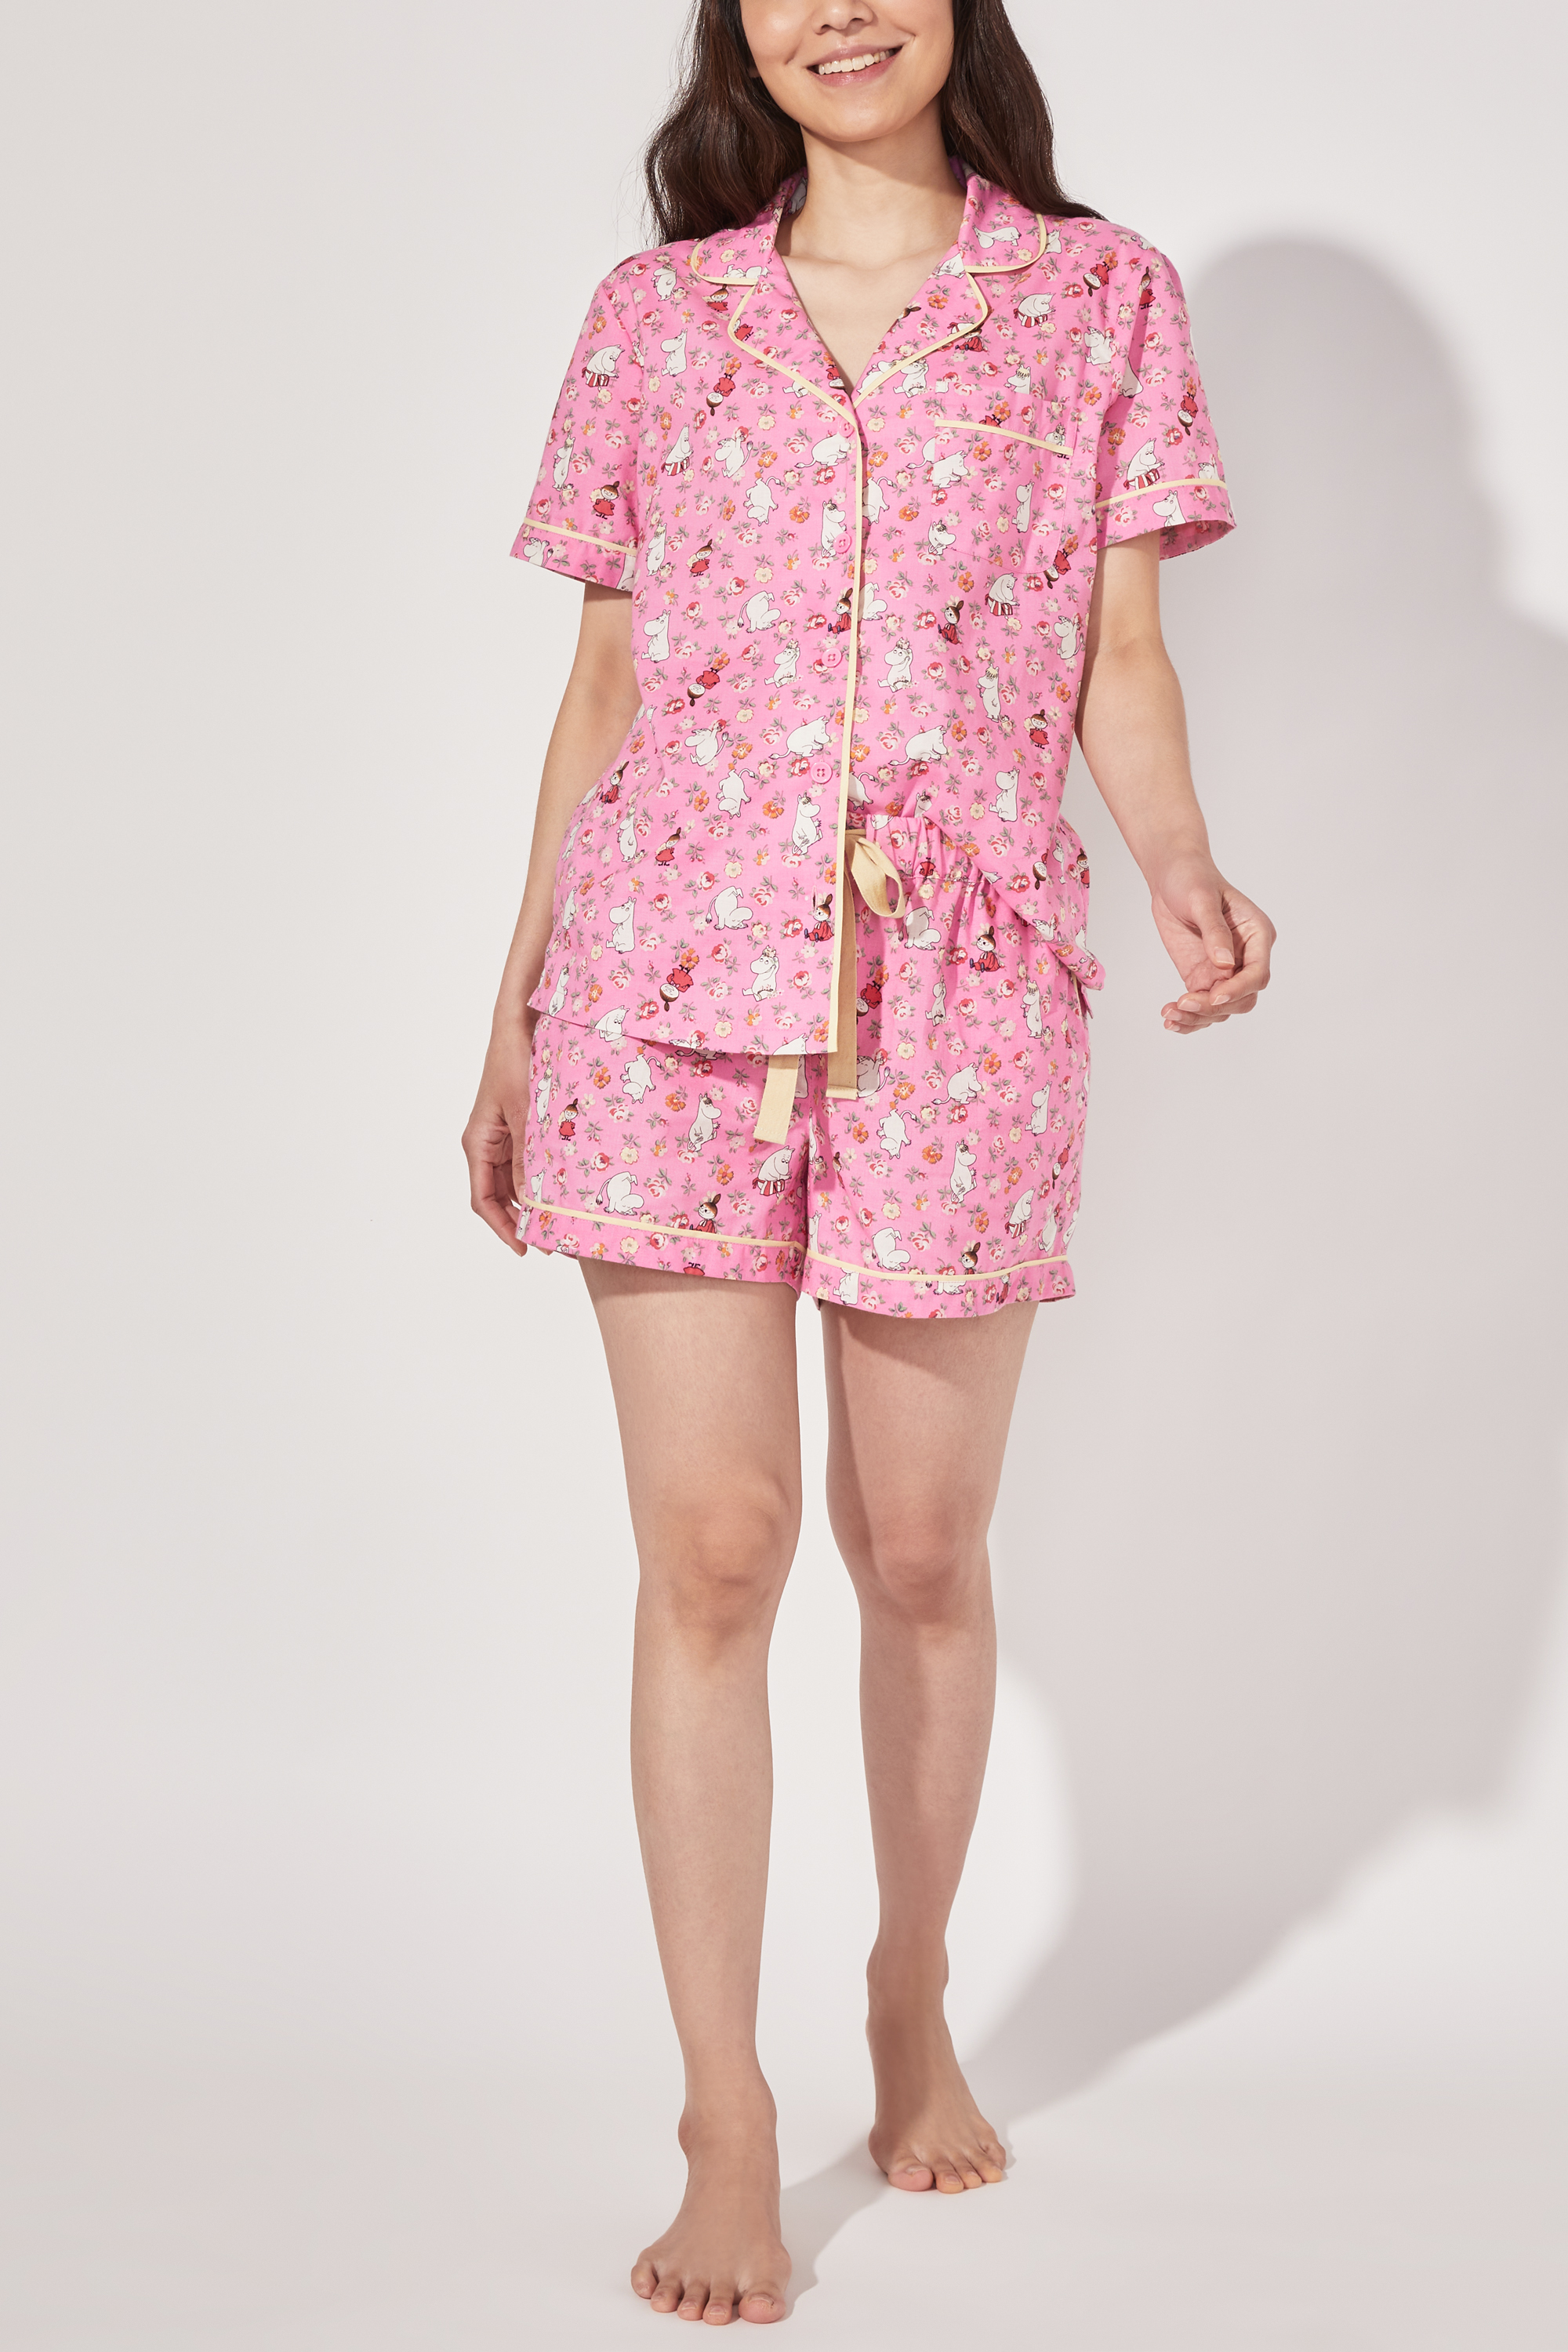 Cath Kidston Moomin Linen Sprig Short Woven PJ Set in Pink, Size Large